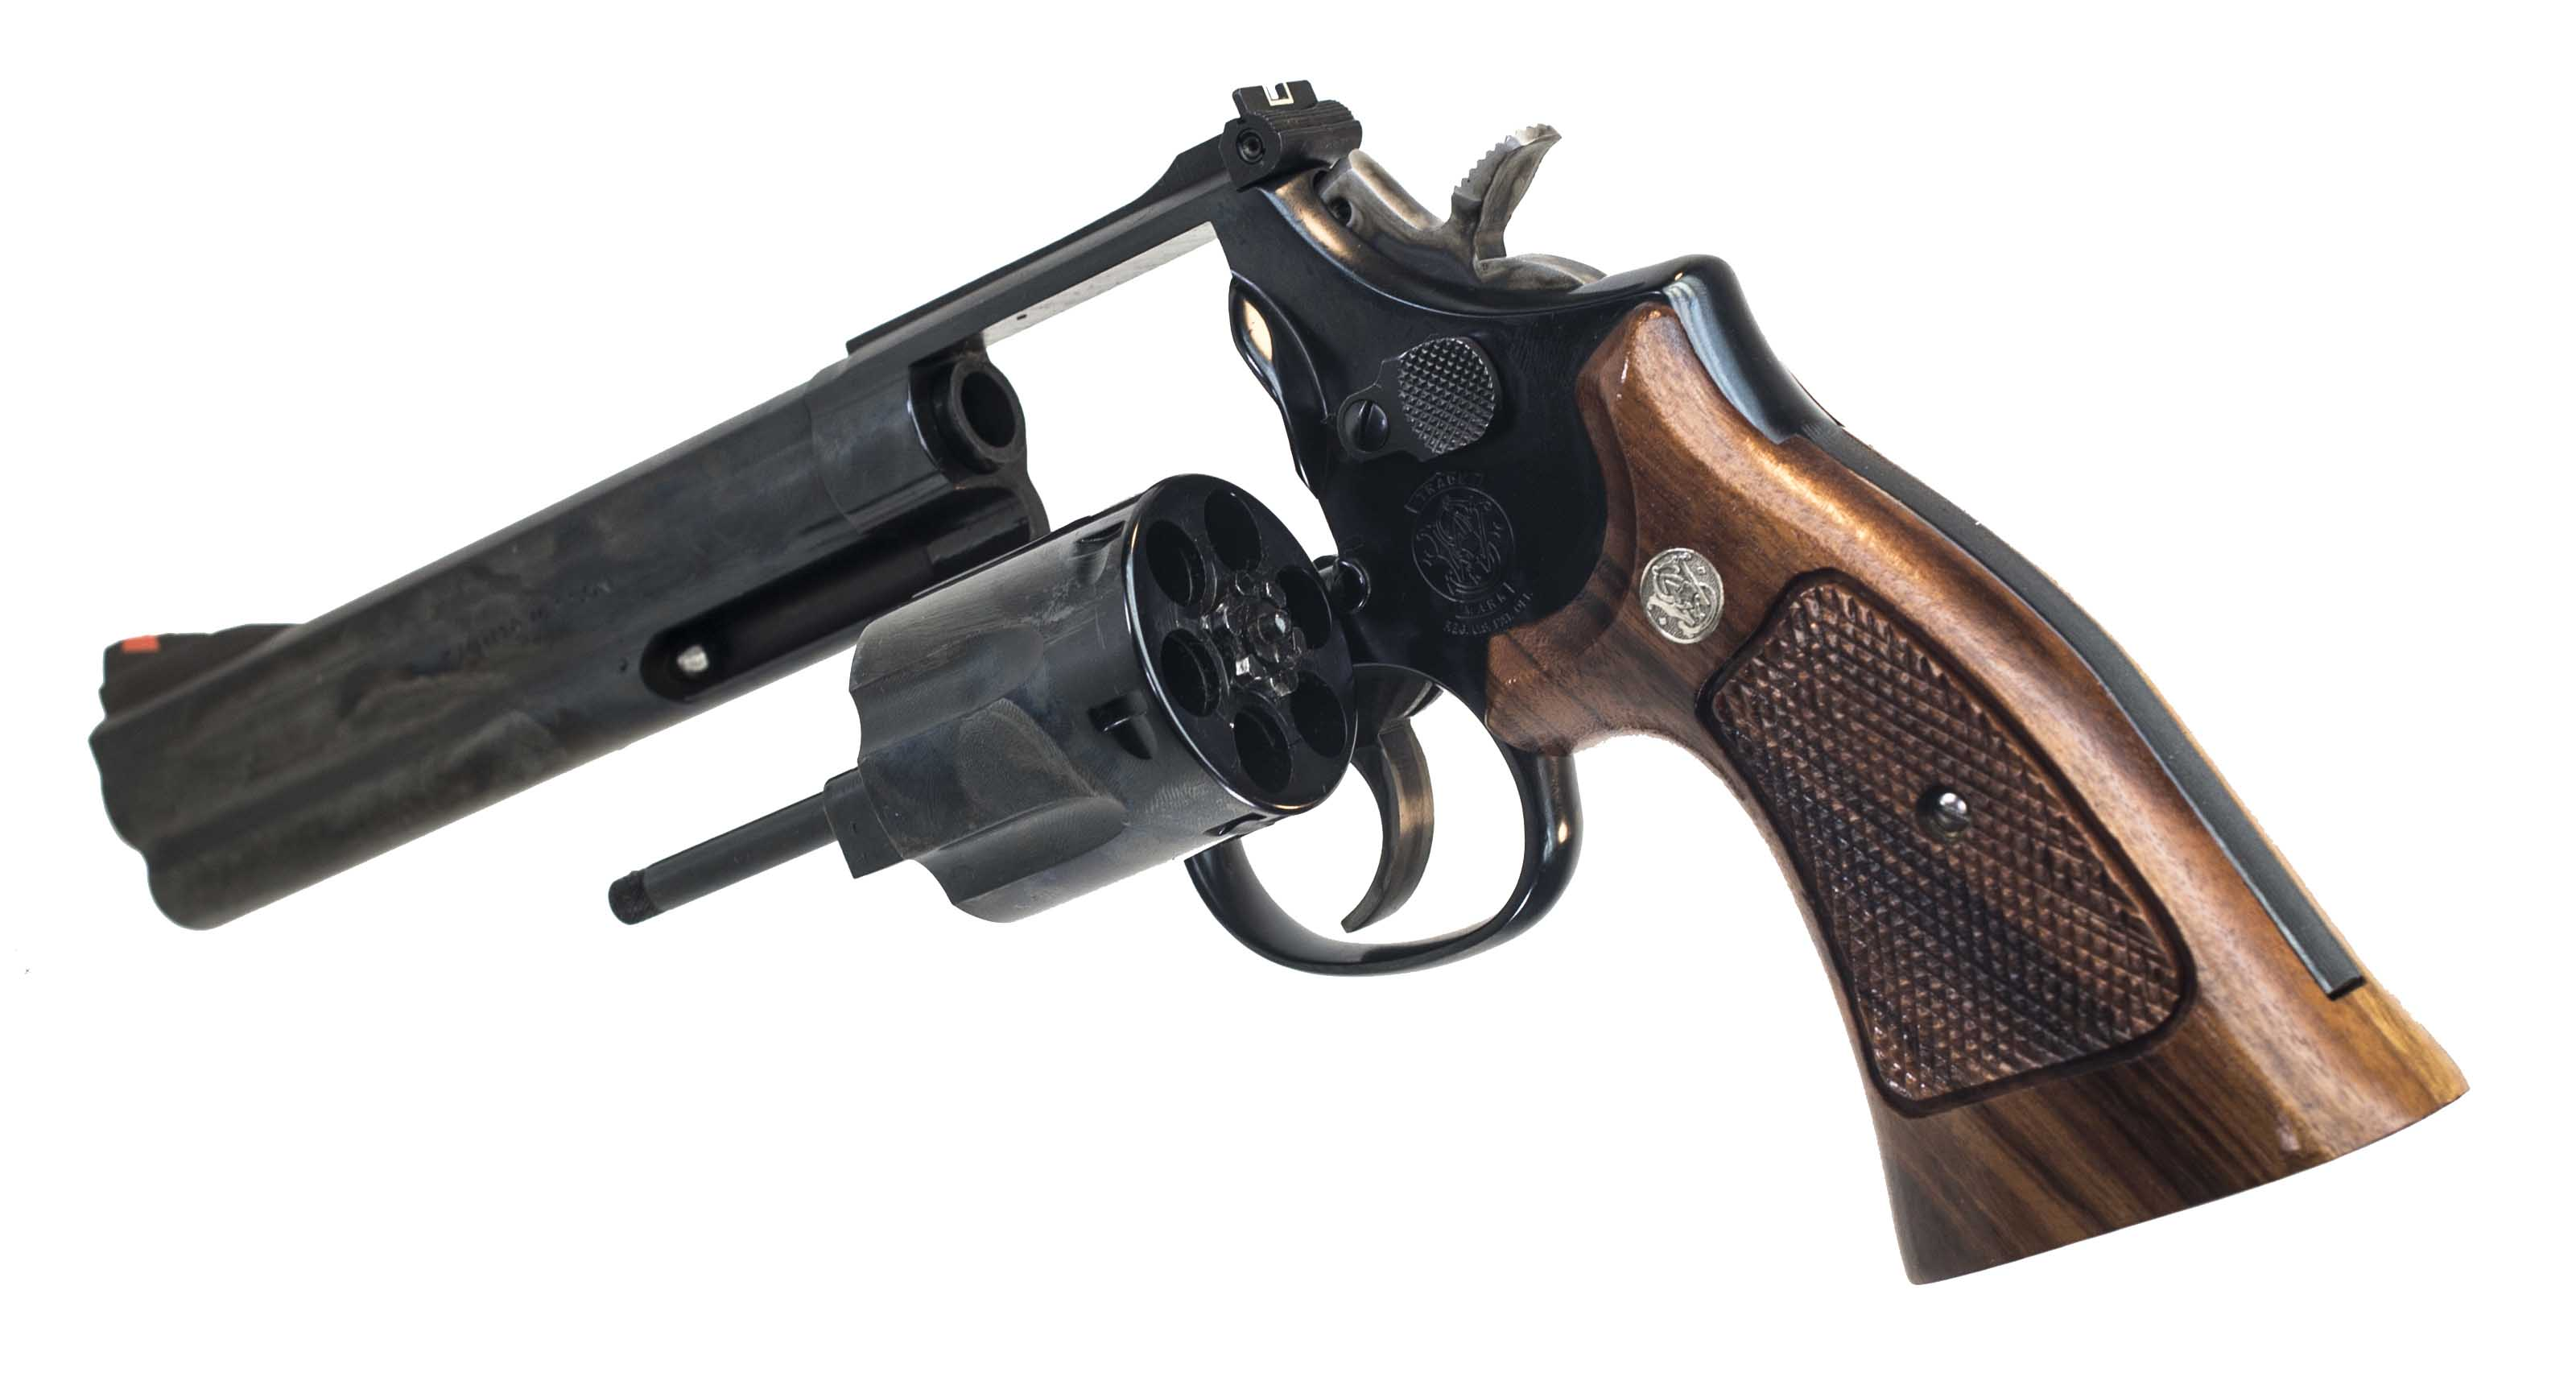 SMITH WESSON MODEL 586 View Full Size Images